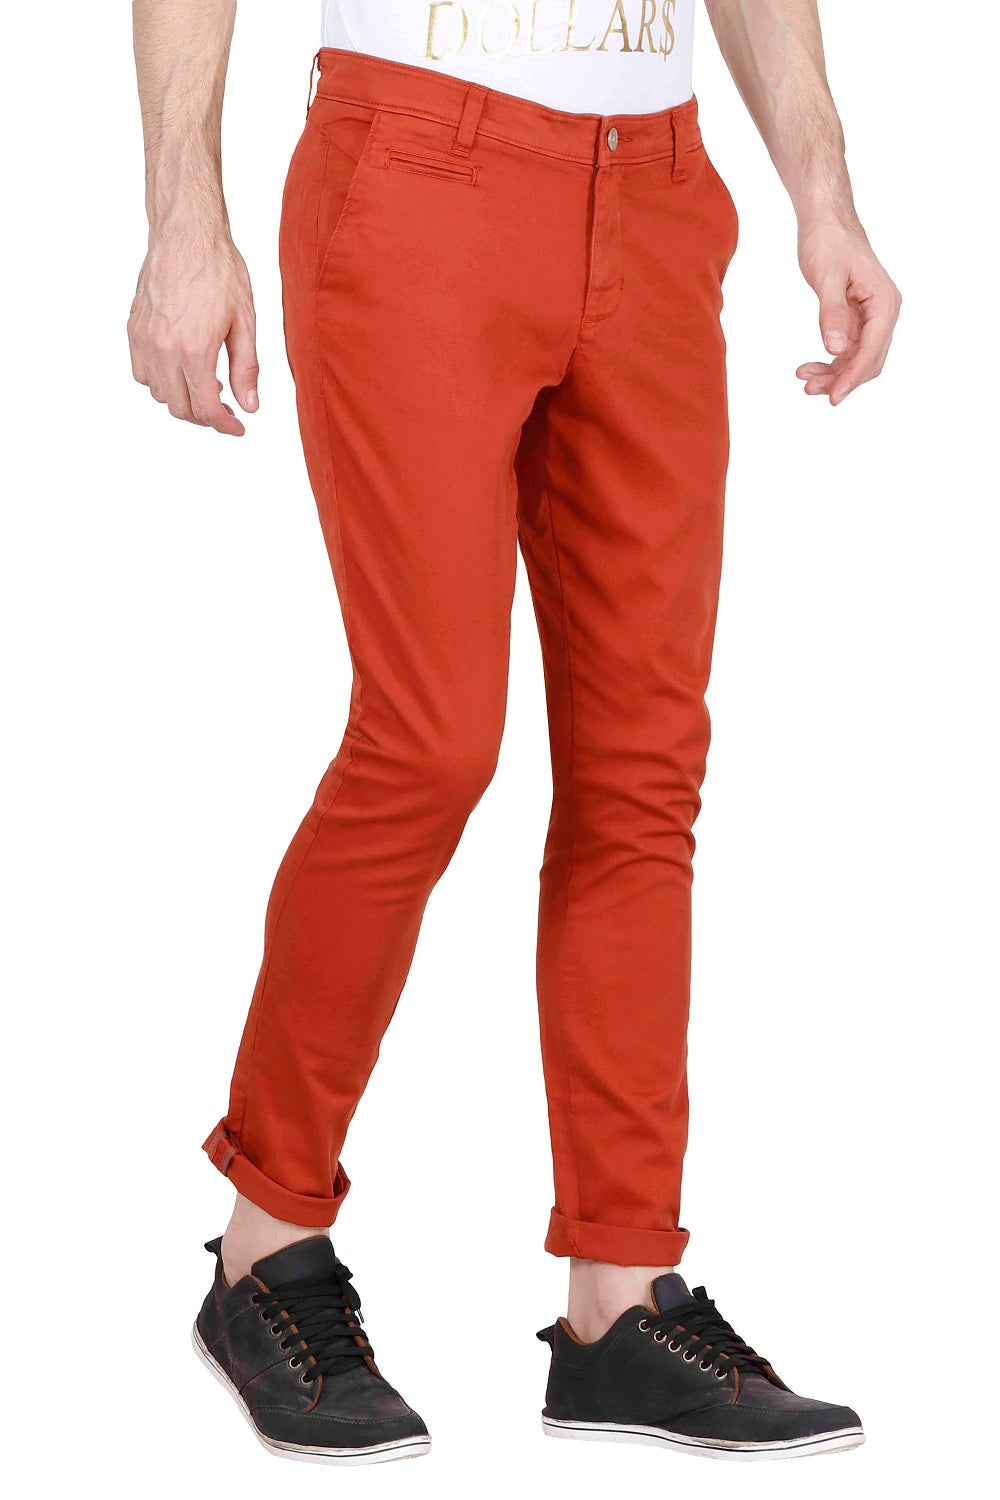 MEN'S SLIM FIT RUST ORANGE COTTON CHINOS